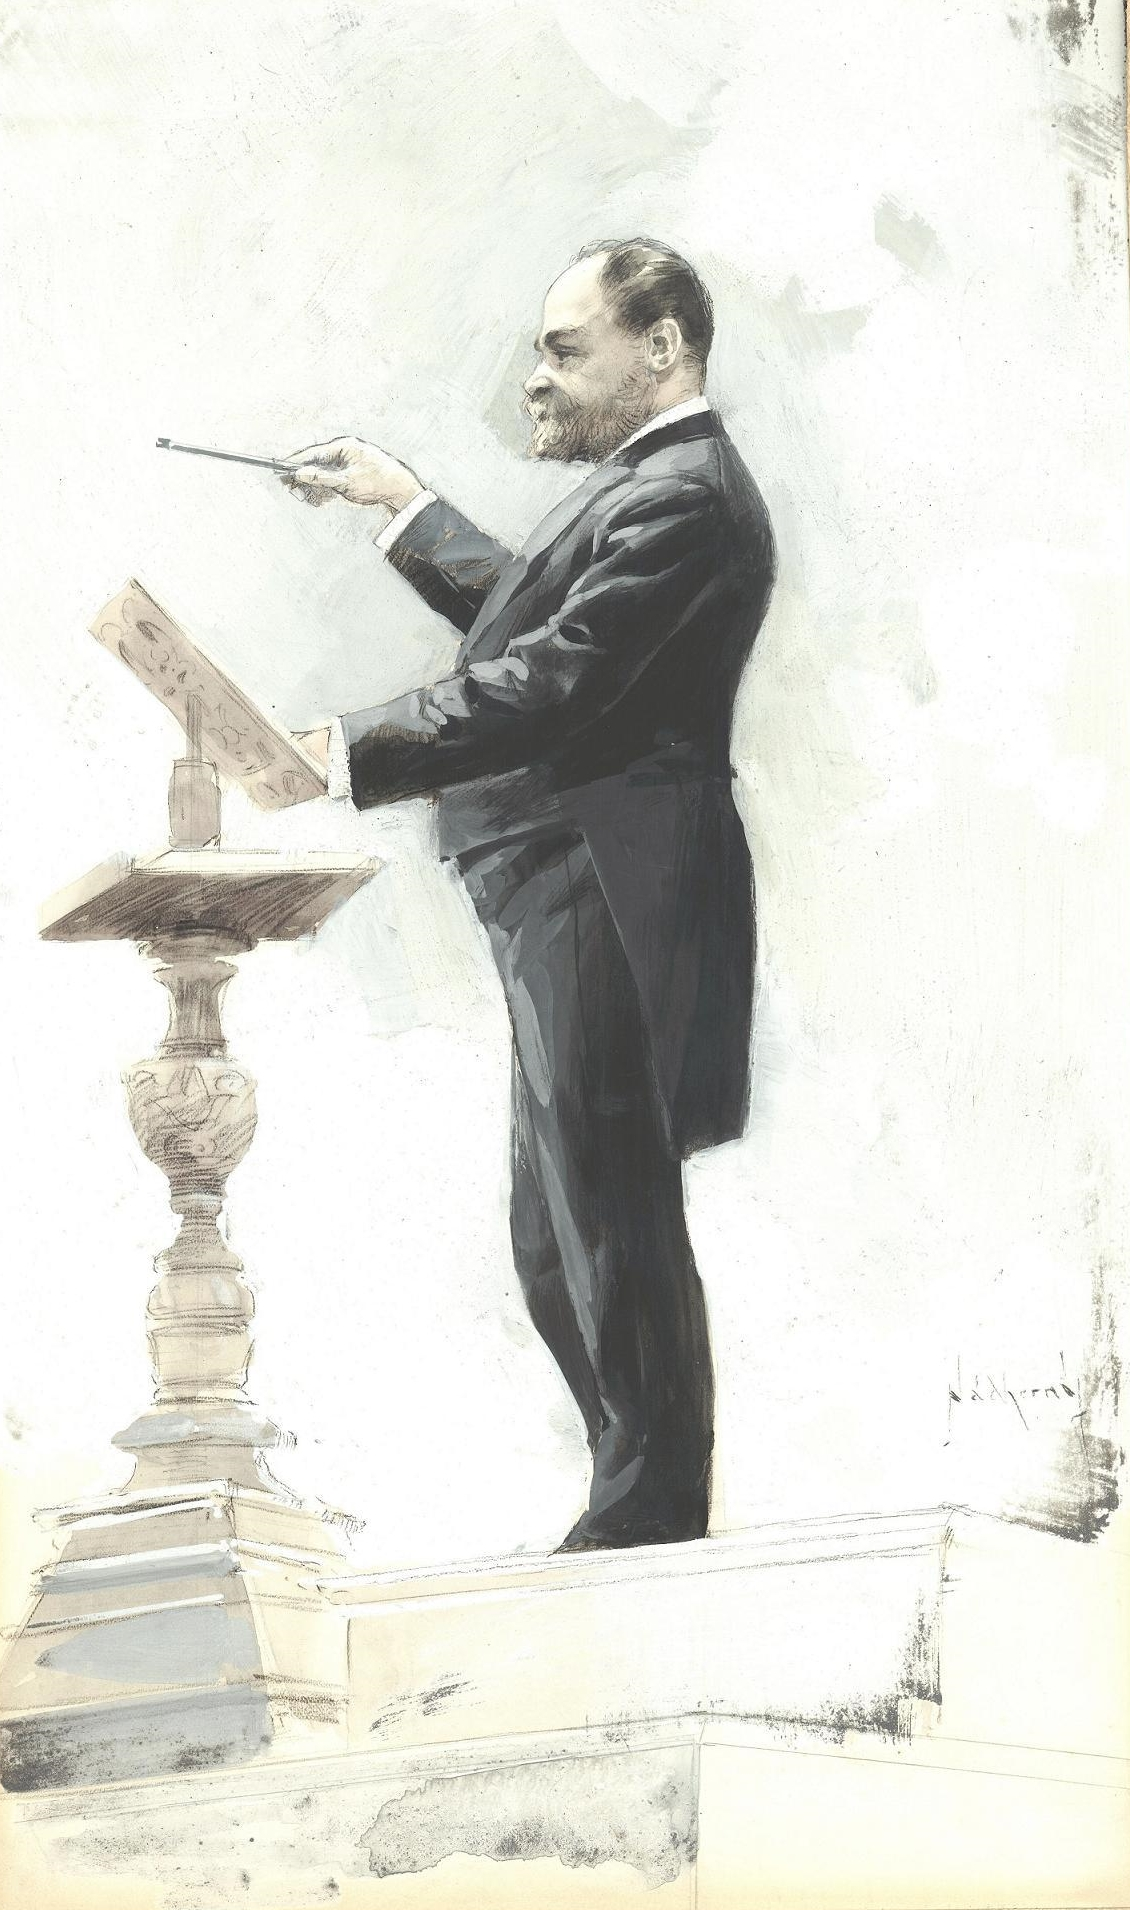 Dvořák conducting at the World's Columbian Exposition of 1893 in Chicago, by V. E. Nádherný.  Courtesy of National Museum – Czech Museum of Music – Museum of Antonín Dvořák, Prague.